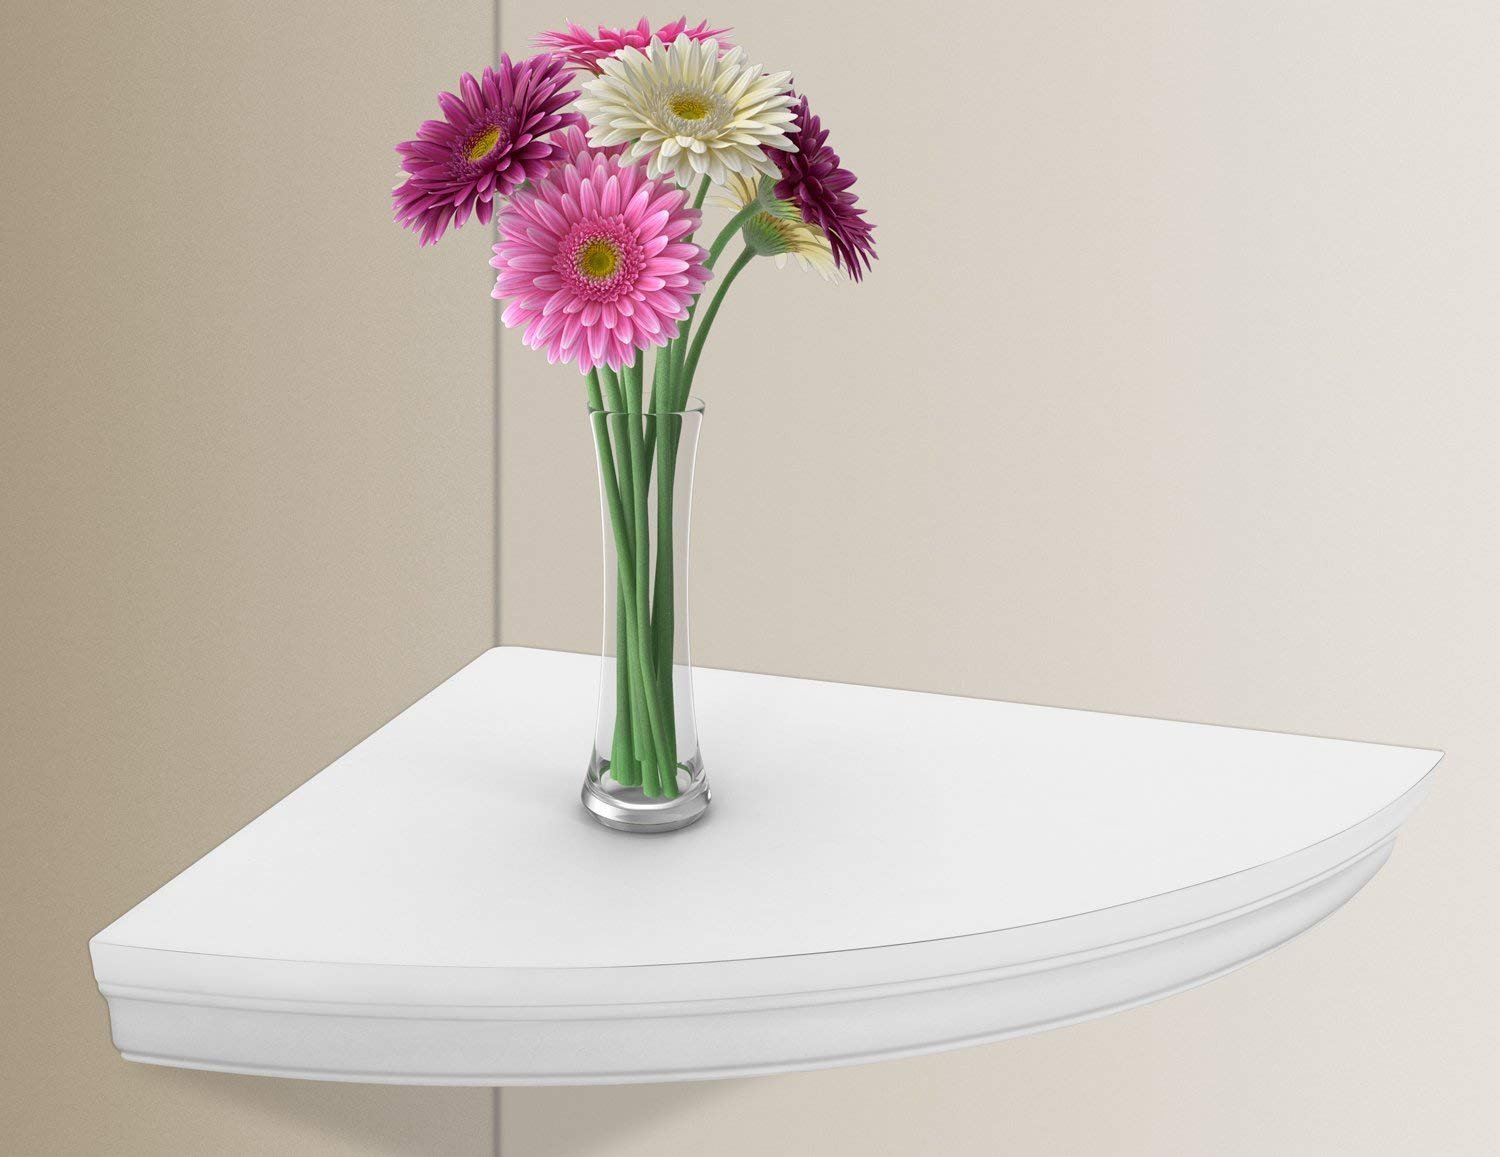 Halter Corner Floating Shelf – Space Saving Round Design with No Visible Support. 10''x 10'' White, Mounting Hardware Included, Functional & Decorative.